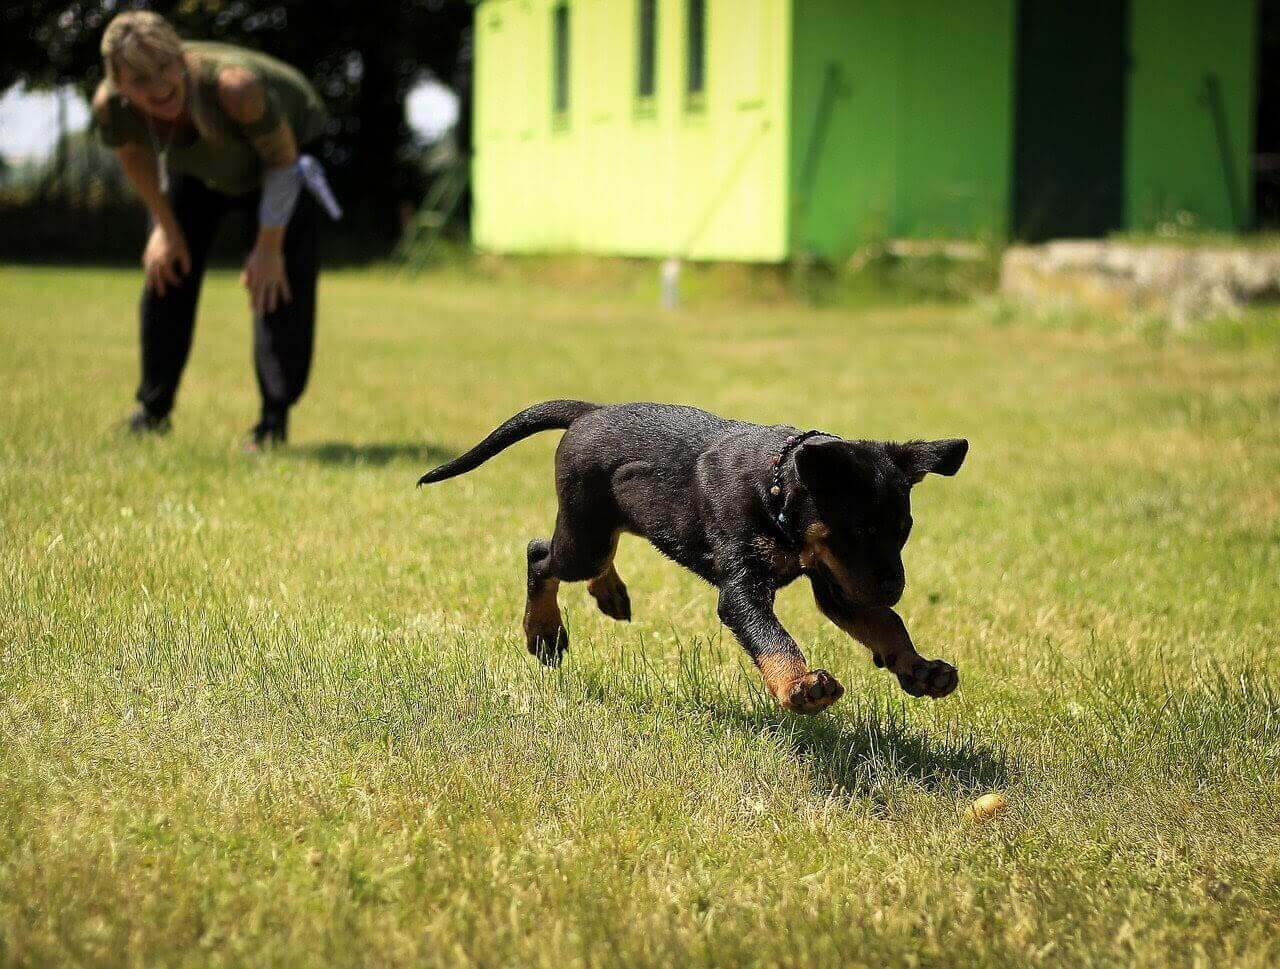 A woman watches a puppy lunging at a ball in a field